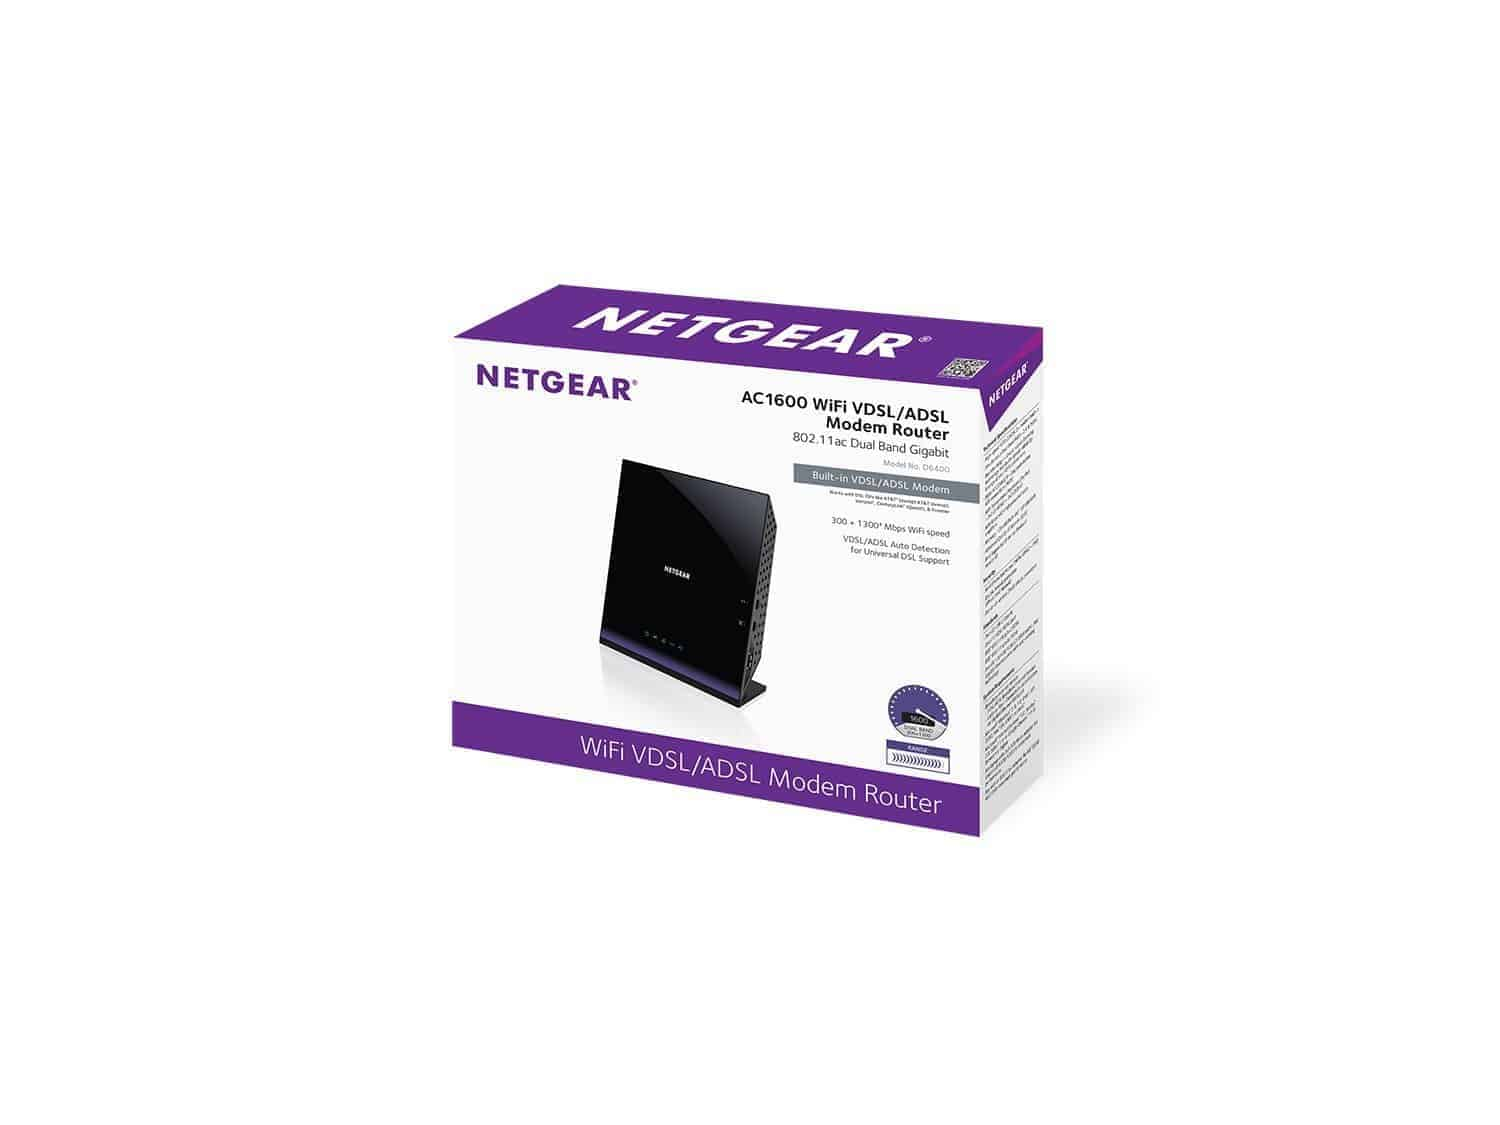 Netgear D6400 AC1600 Full review